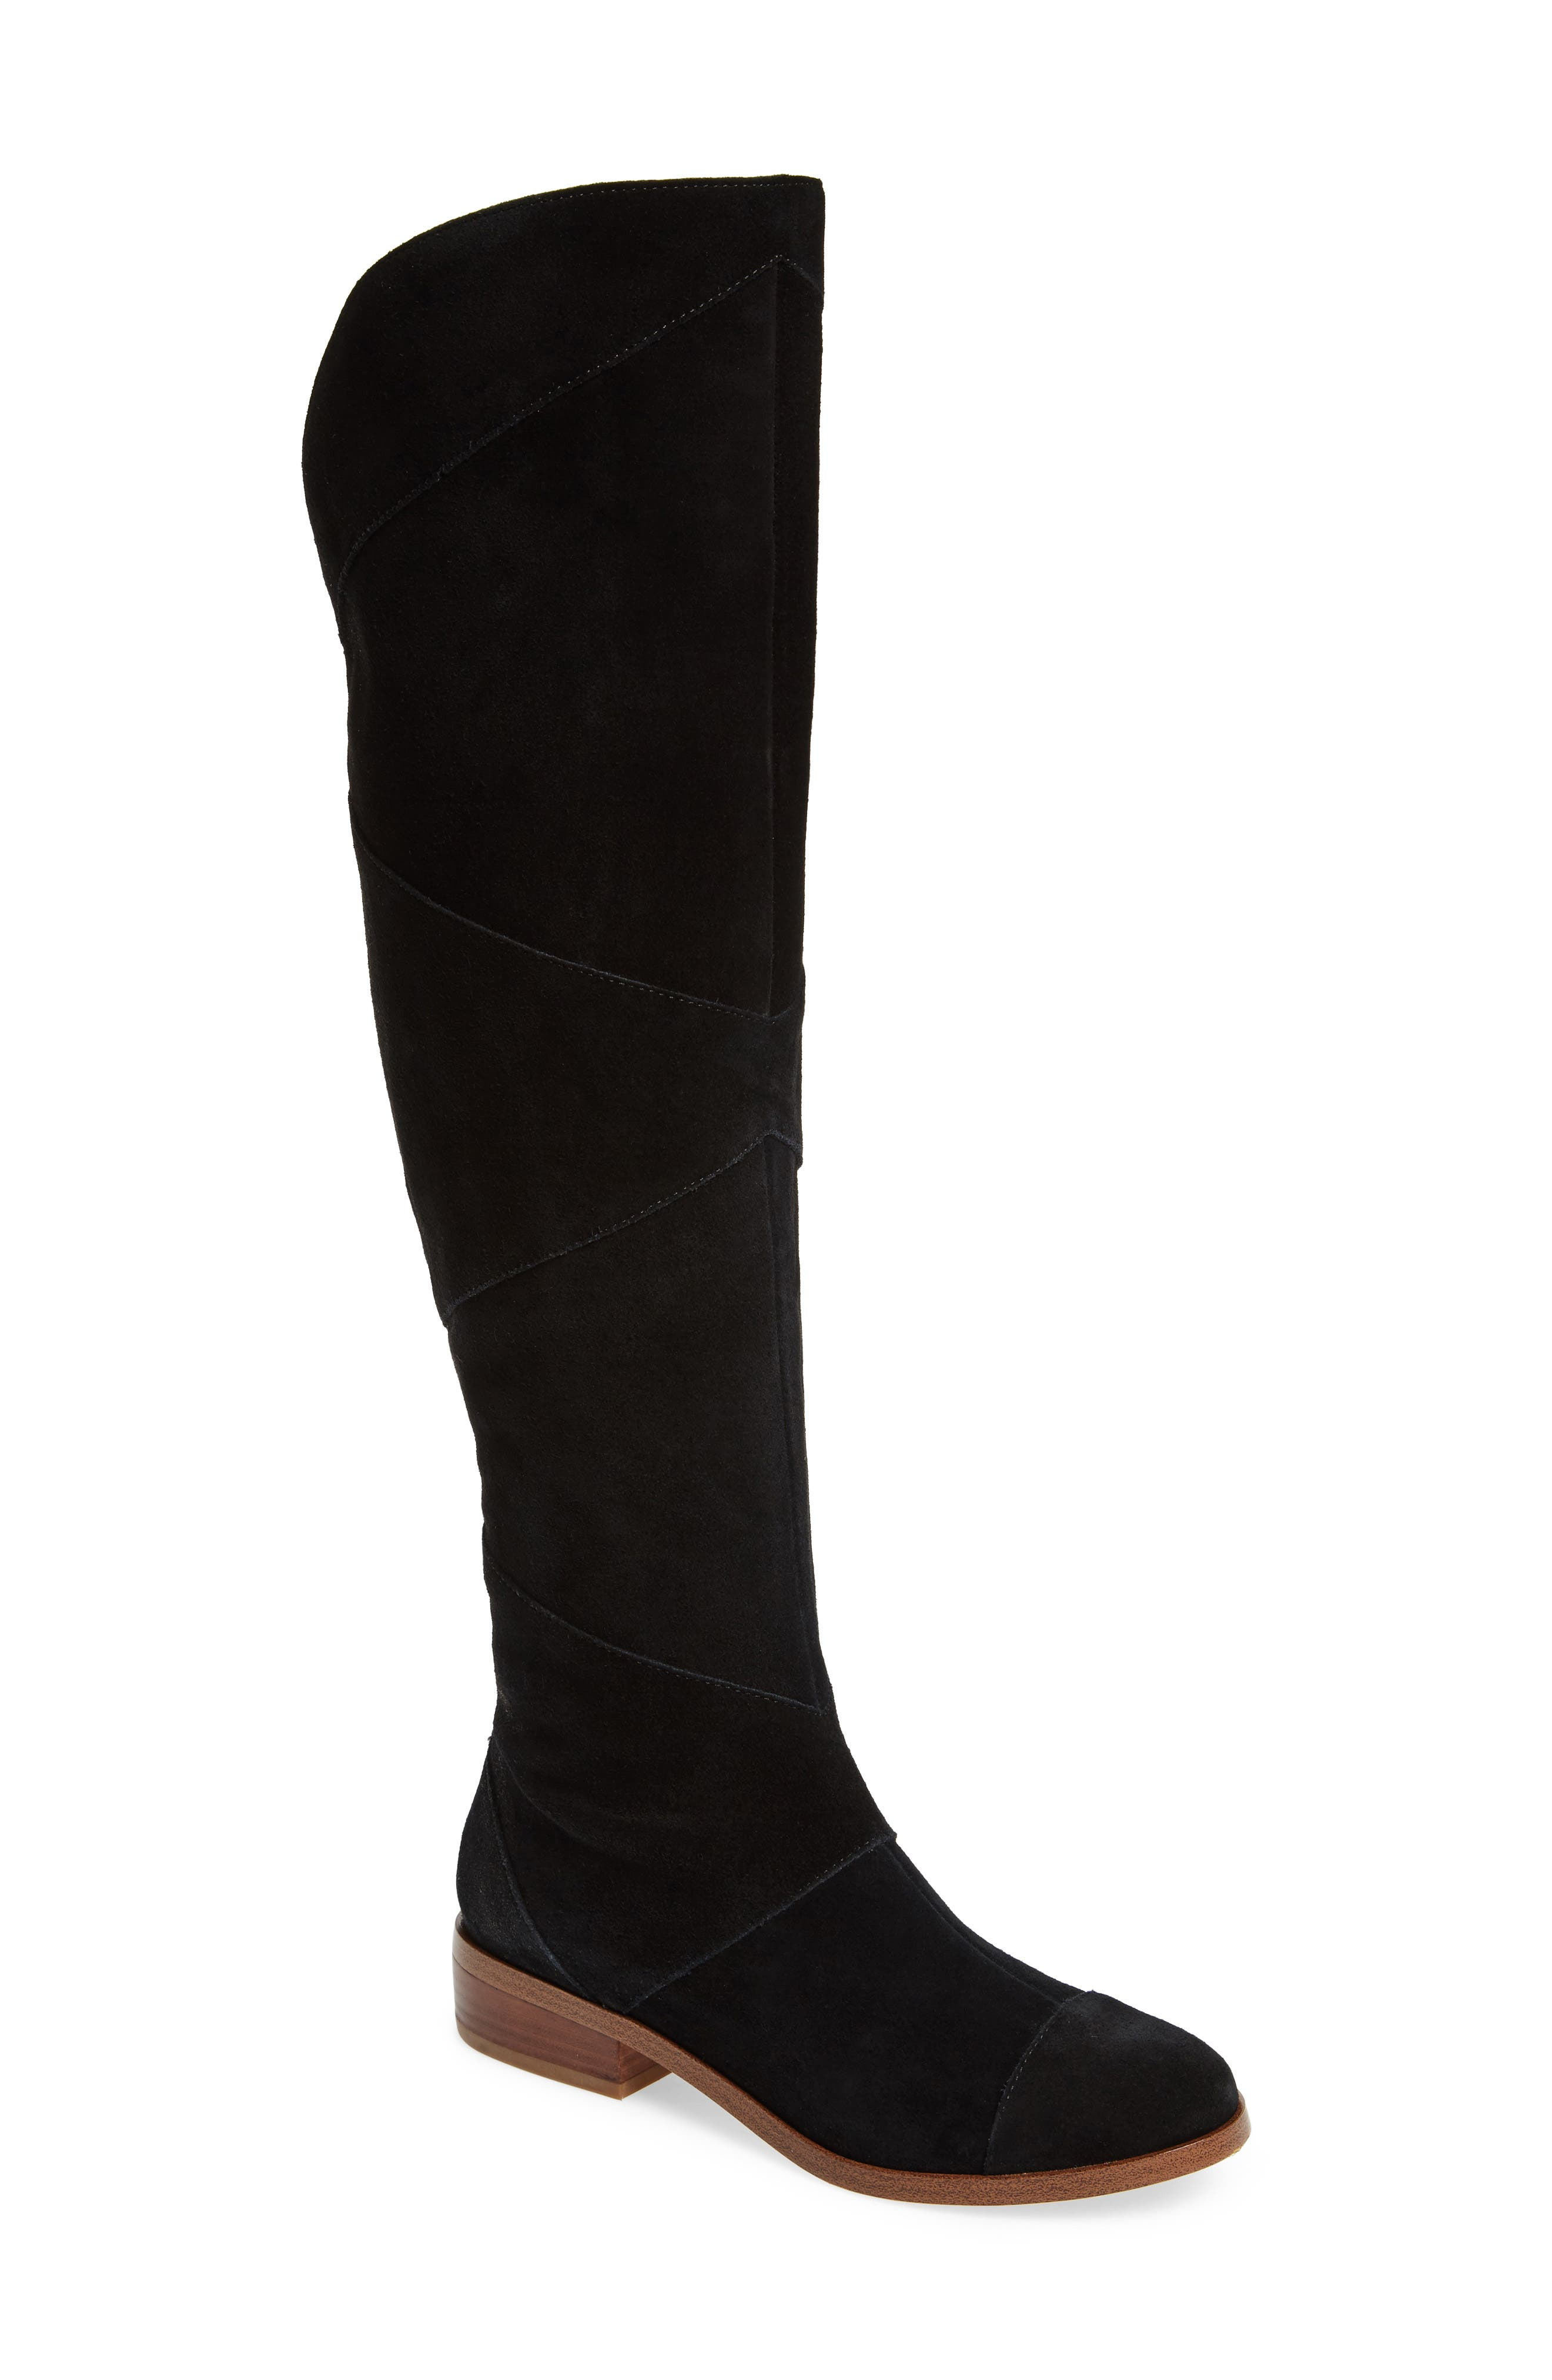 Tiff Over the Knee Boot,                         Main,                         color, BLACK